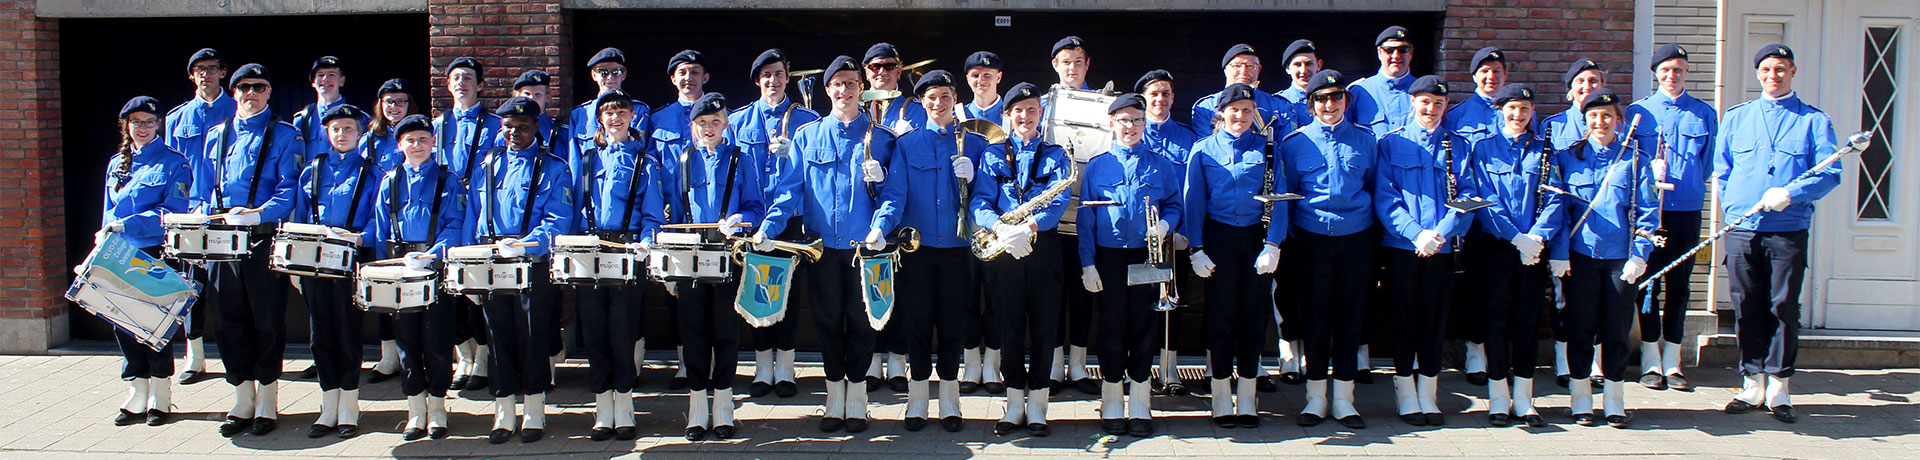 College Petrus En Paulus Onze School Olvo Band Header